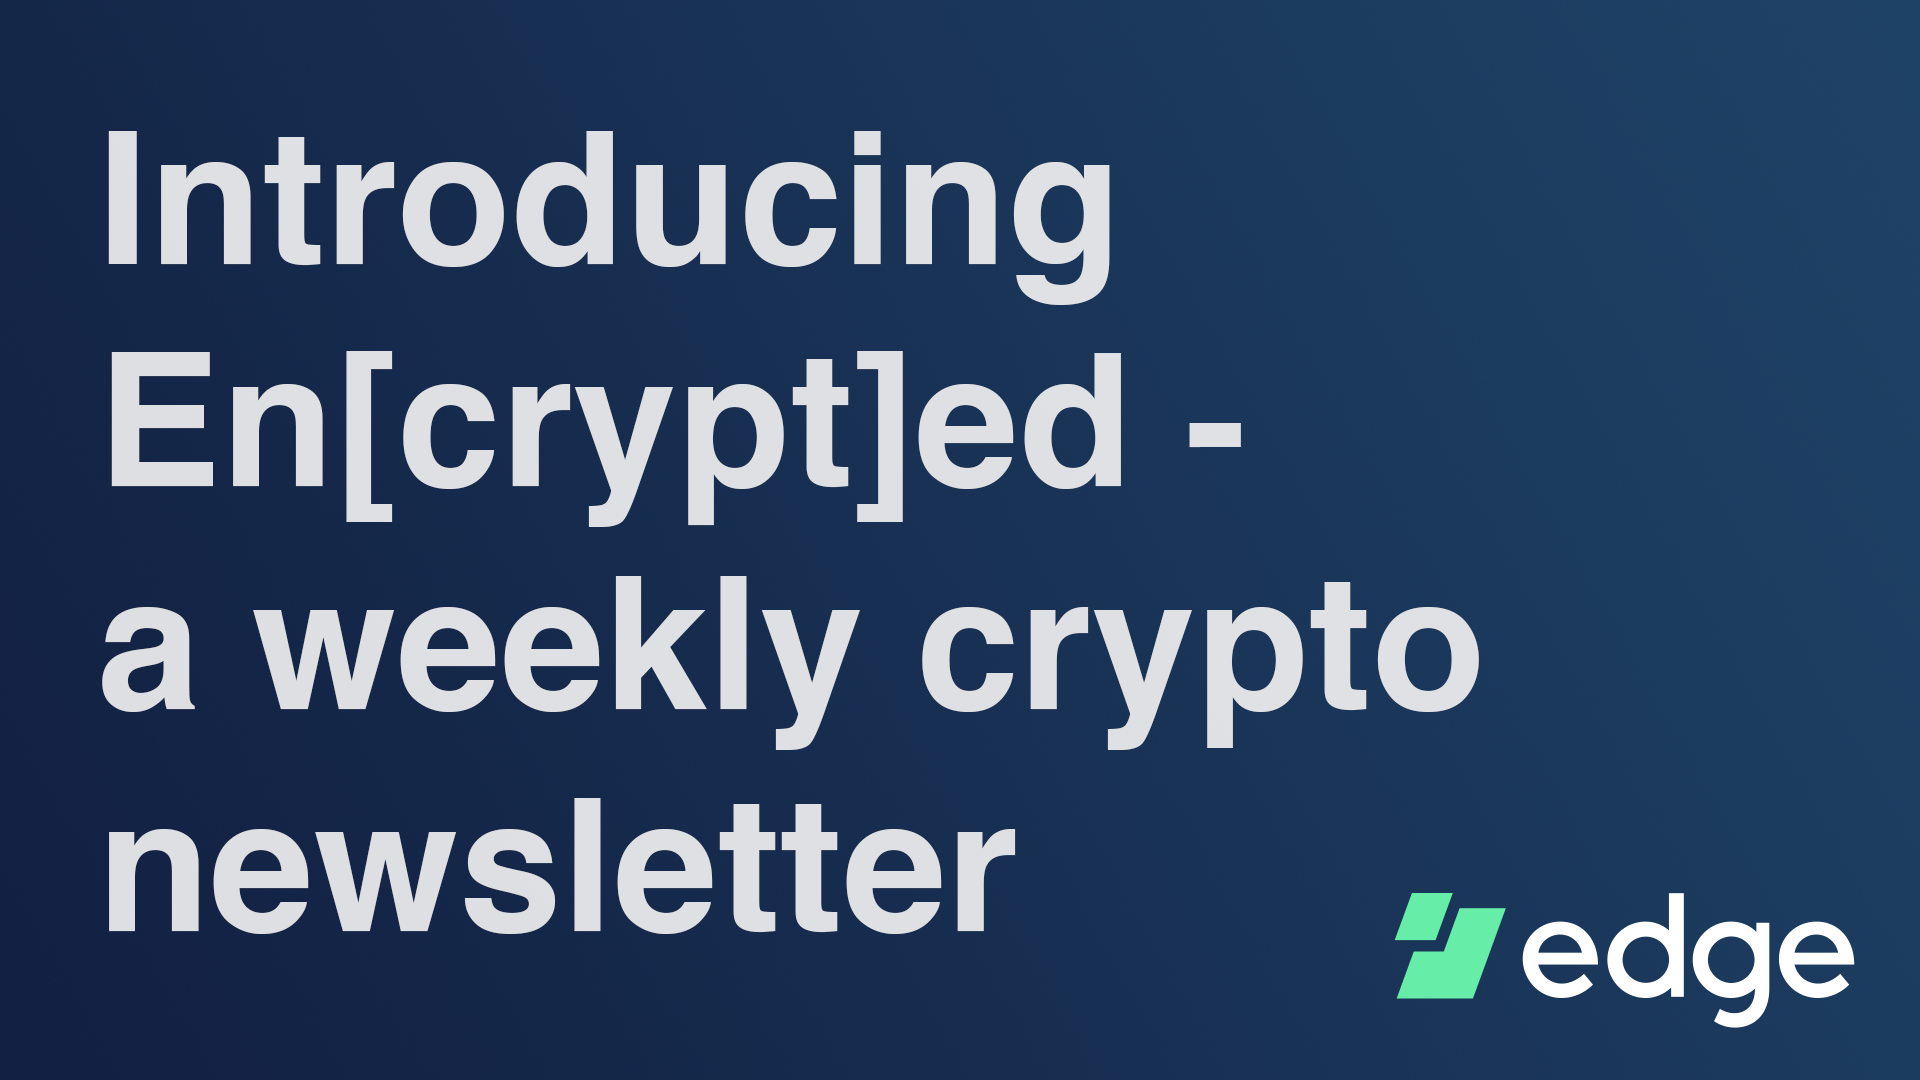 encrypted: weekly crypto news